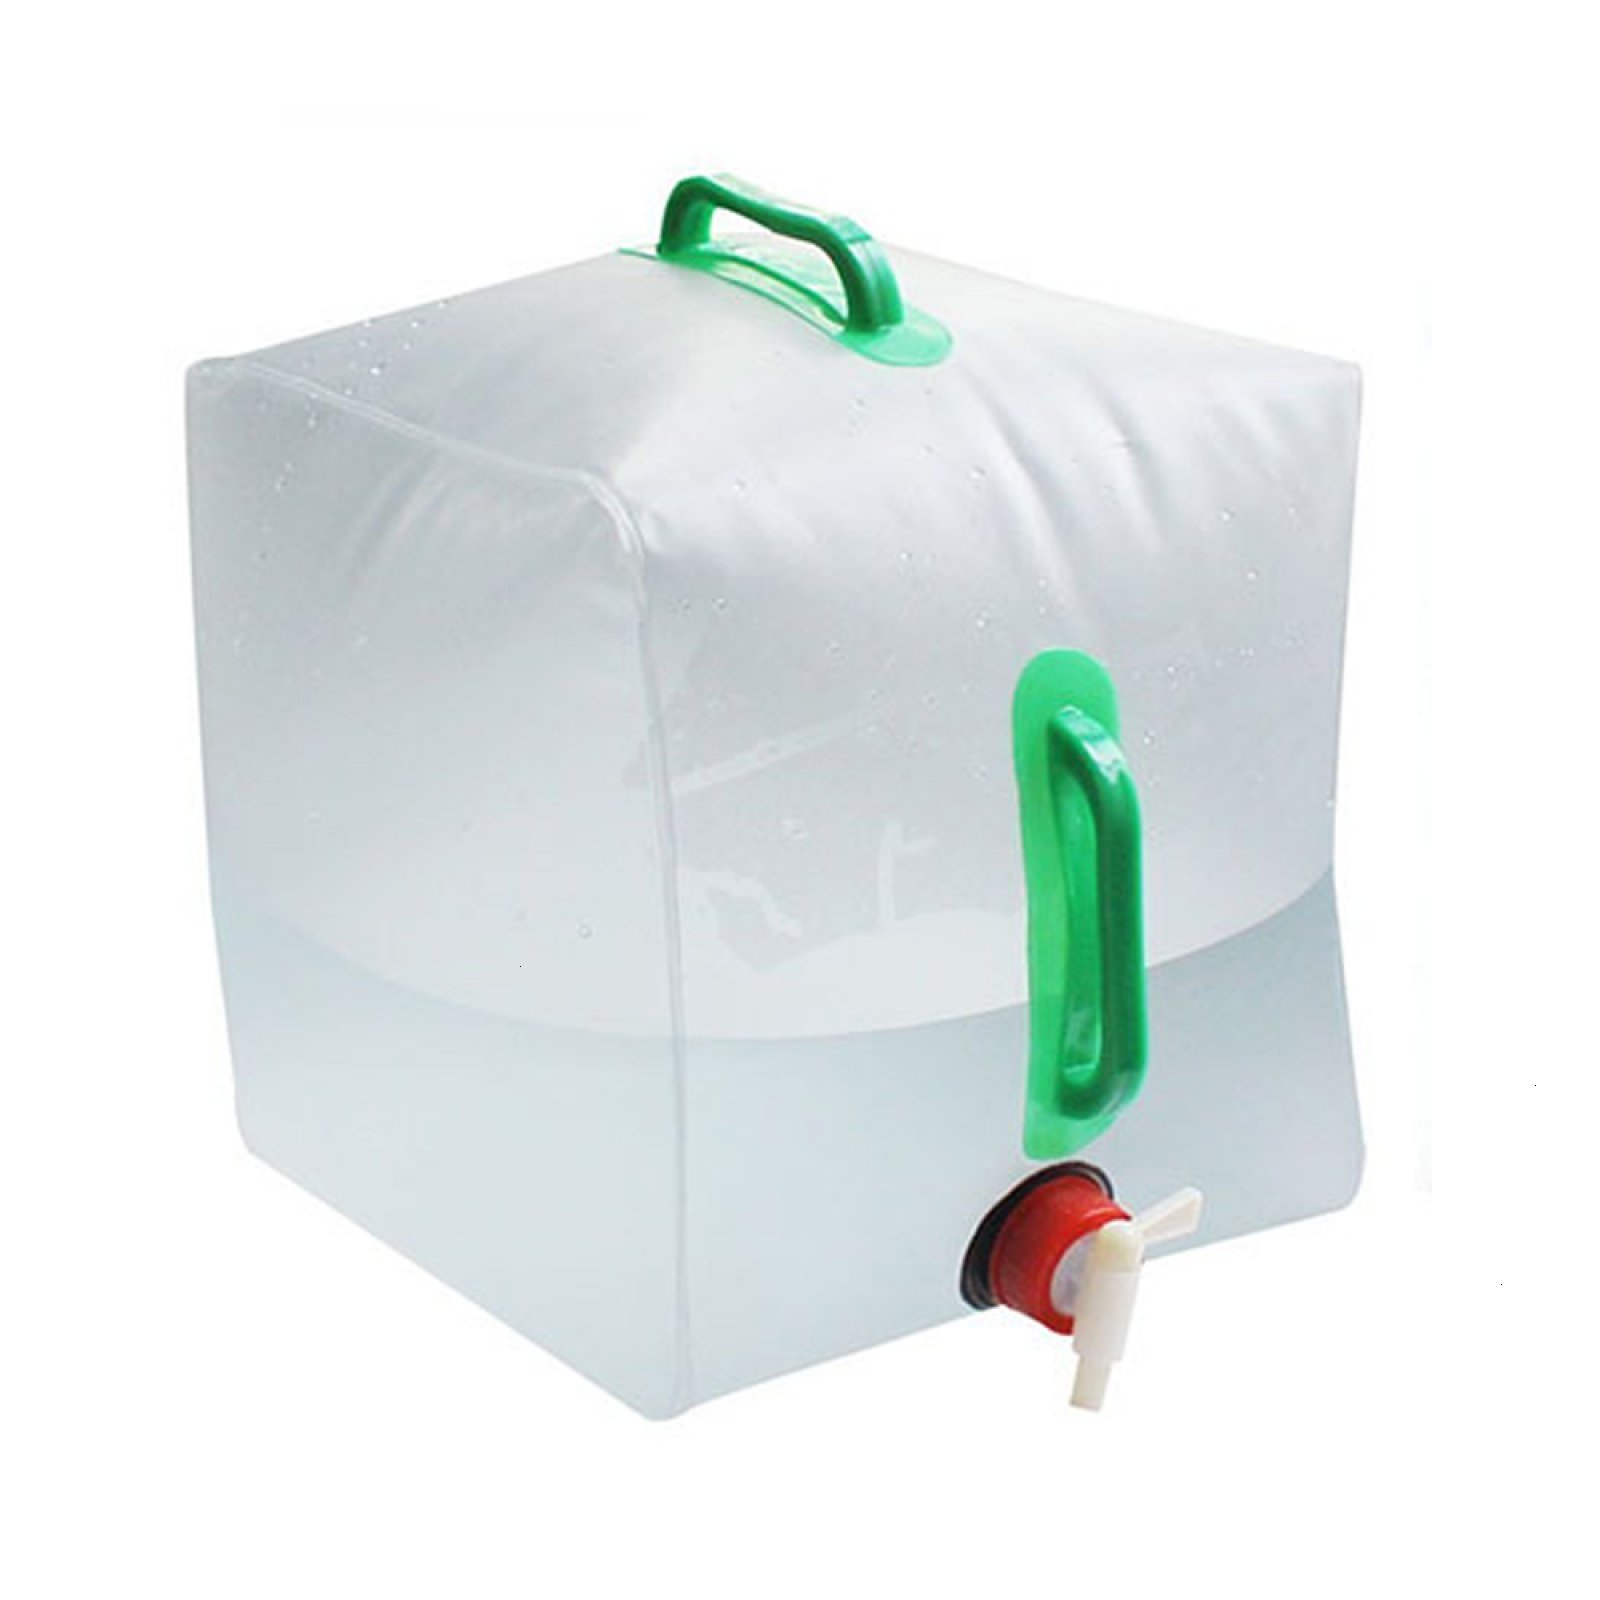 Gaiatop Water Carrier,Collapsible Water Container 5 Gallon/20L,Portable Water Carrier Bag PVC Outdoor Water Storage for Camping Hiking Climbing Backpacking by Gaiatop